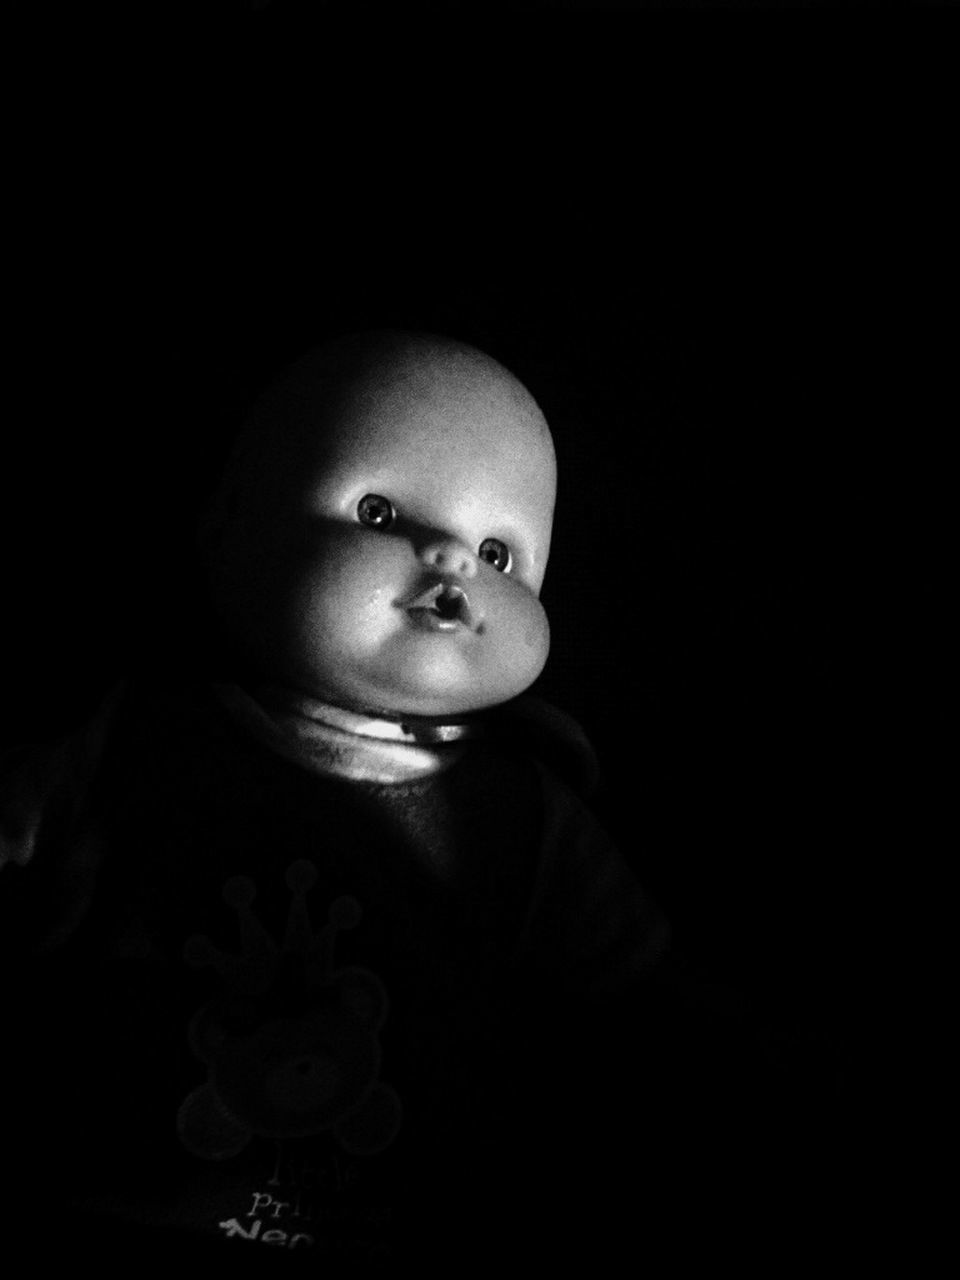 childhood, baby, black background, innocence, indoors, babyhood, cute, studio shot, toddler, front view, one person, close-up, boys, lifestyles, headshot, night, babies only, people